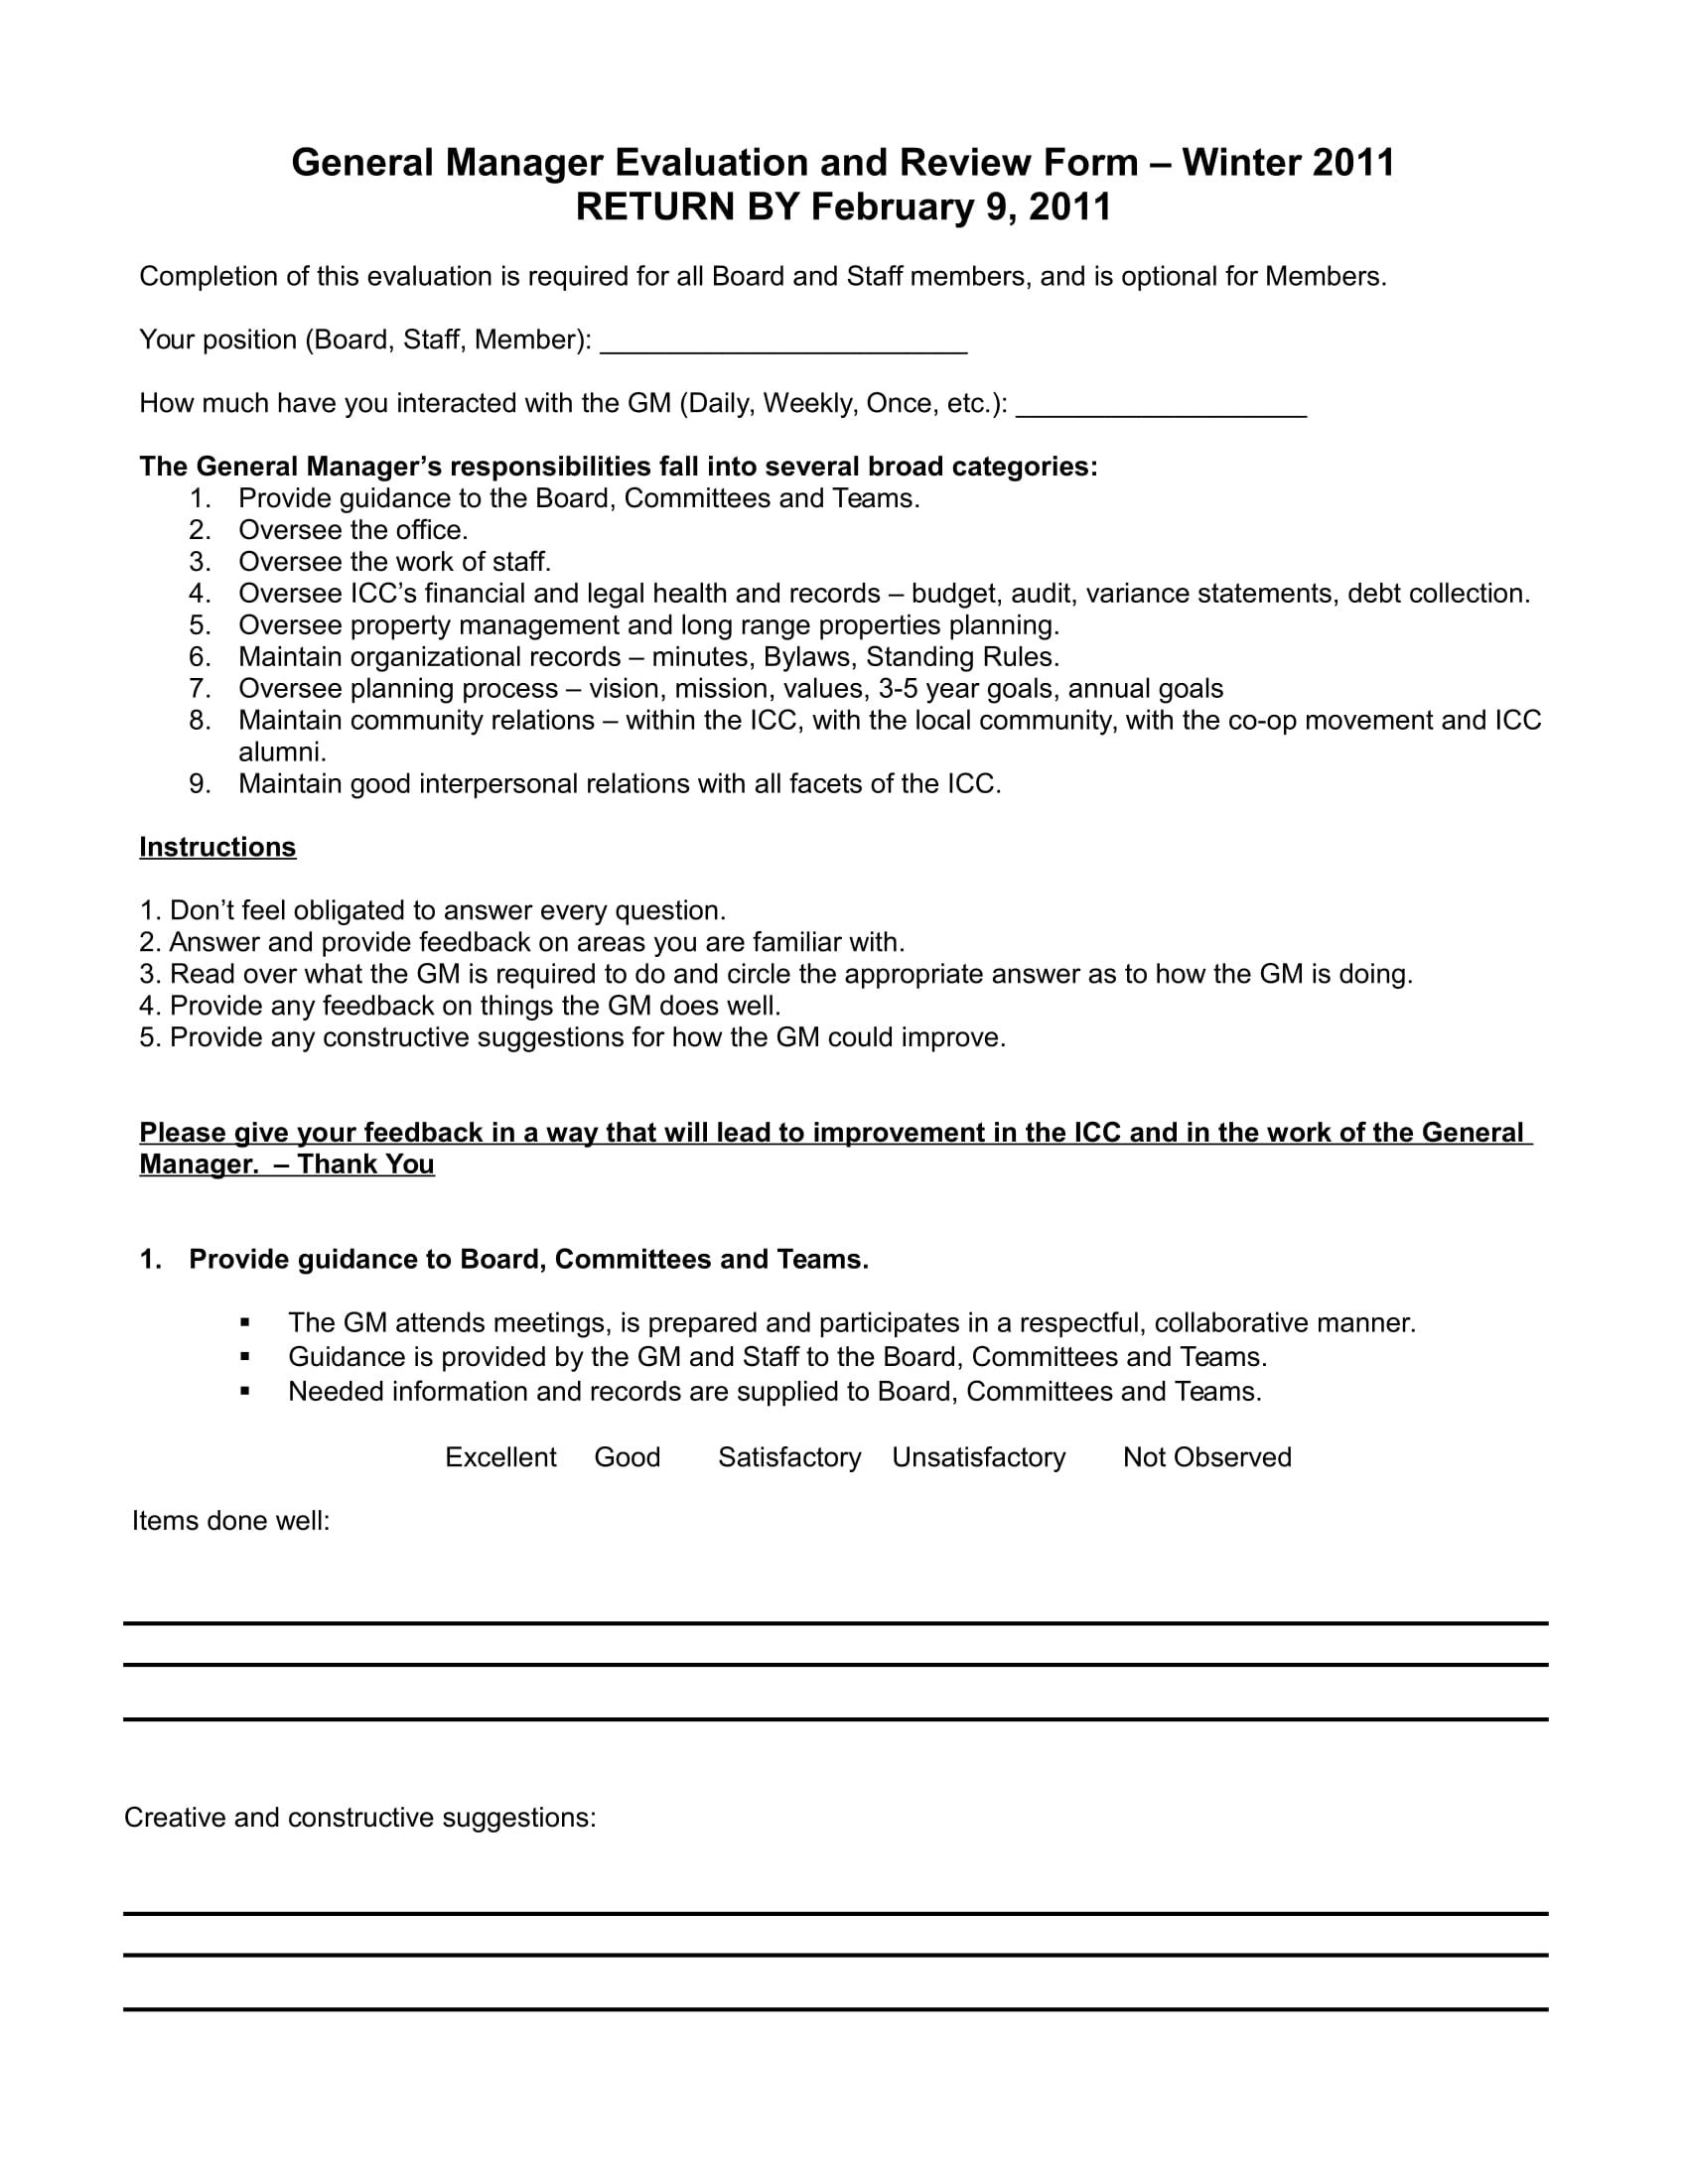 general manager evaluation and review form 1